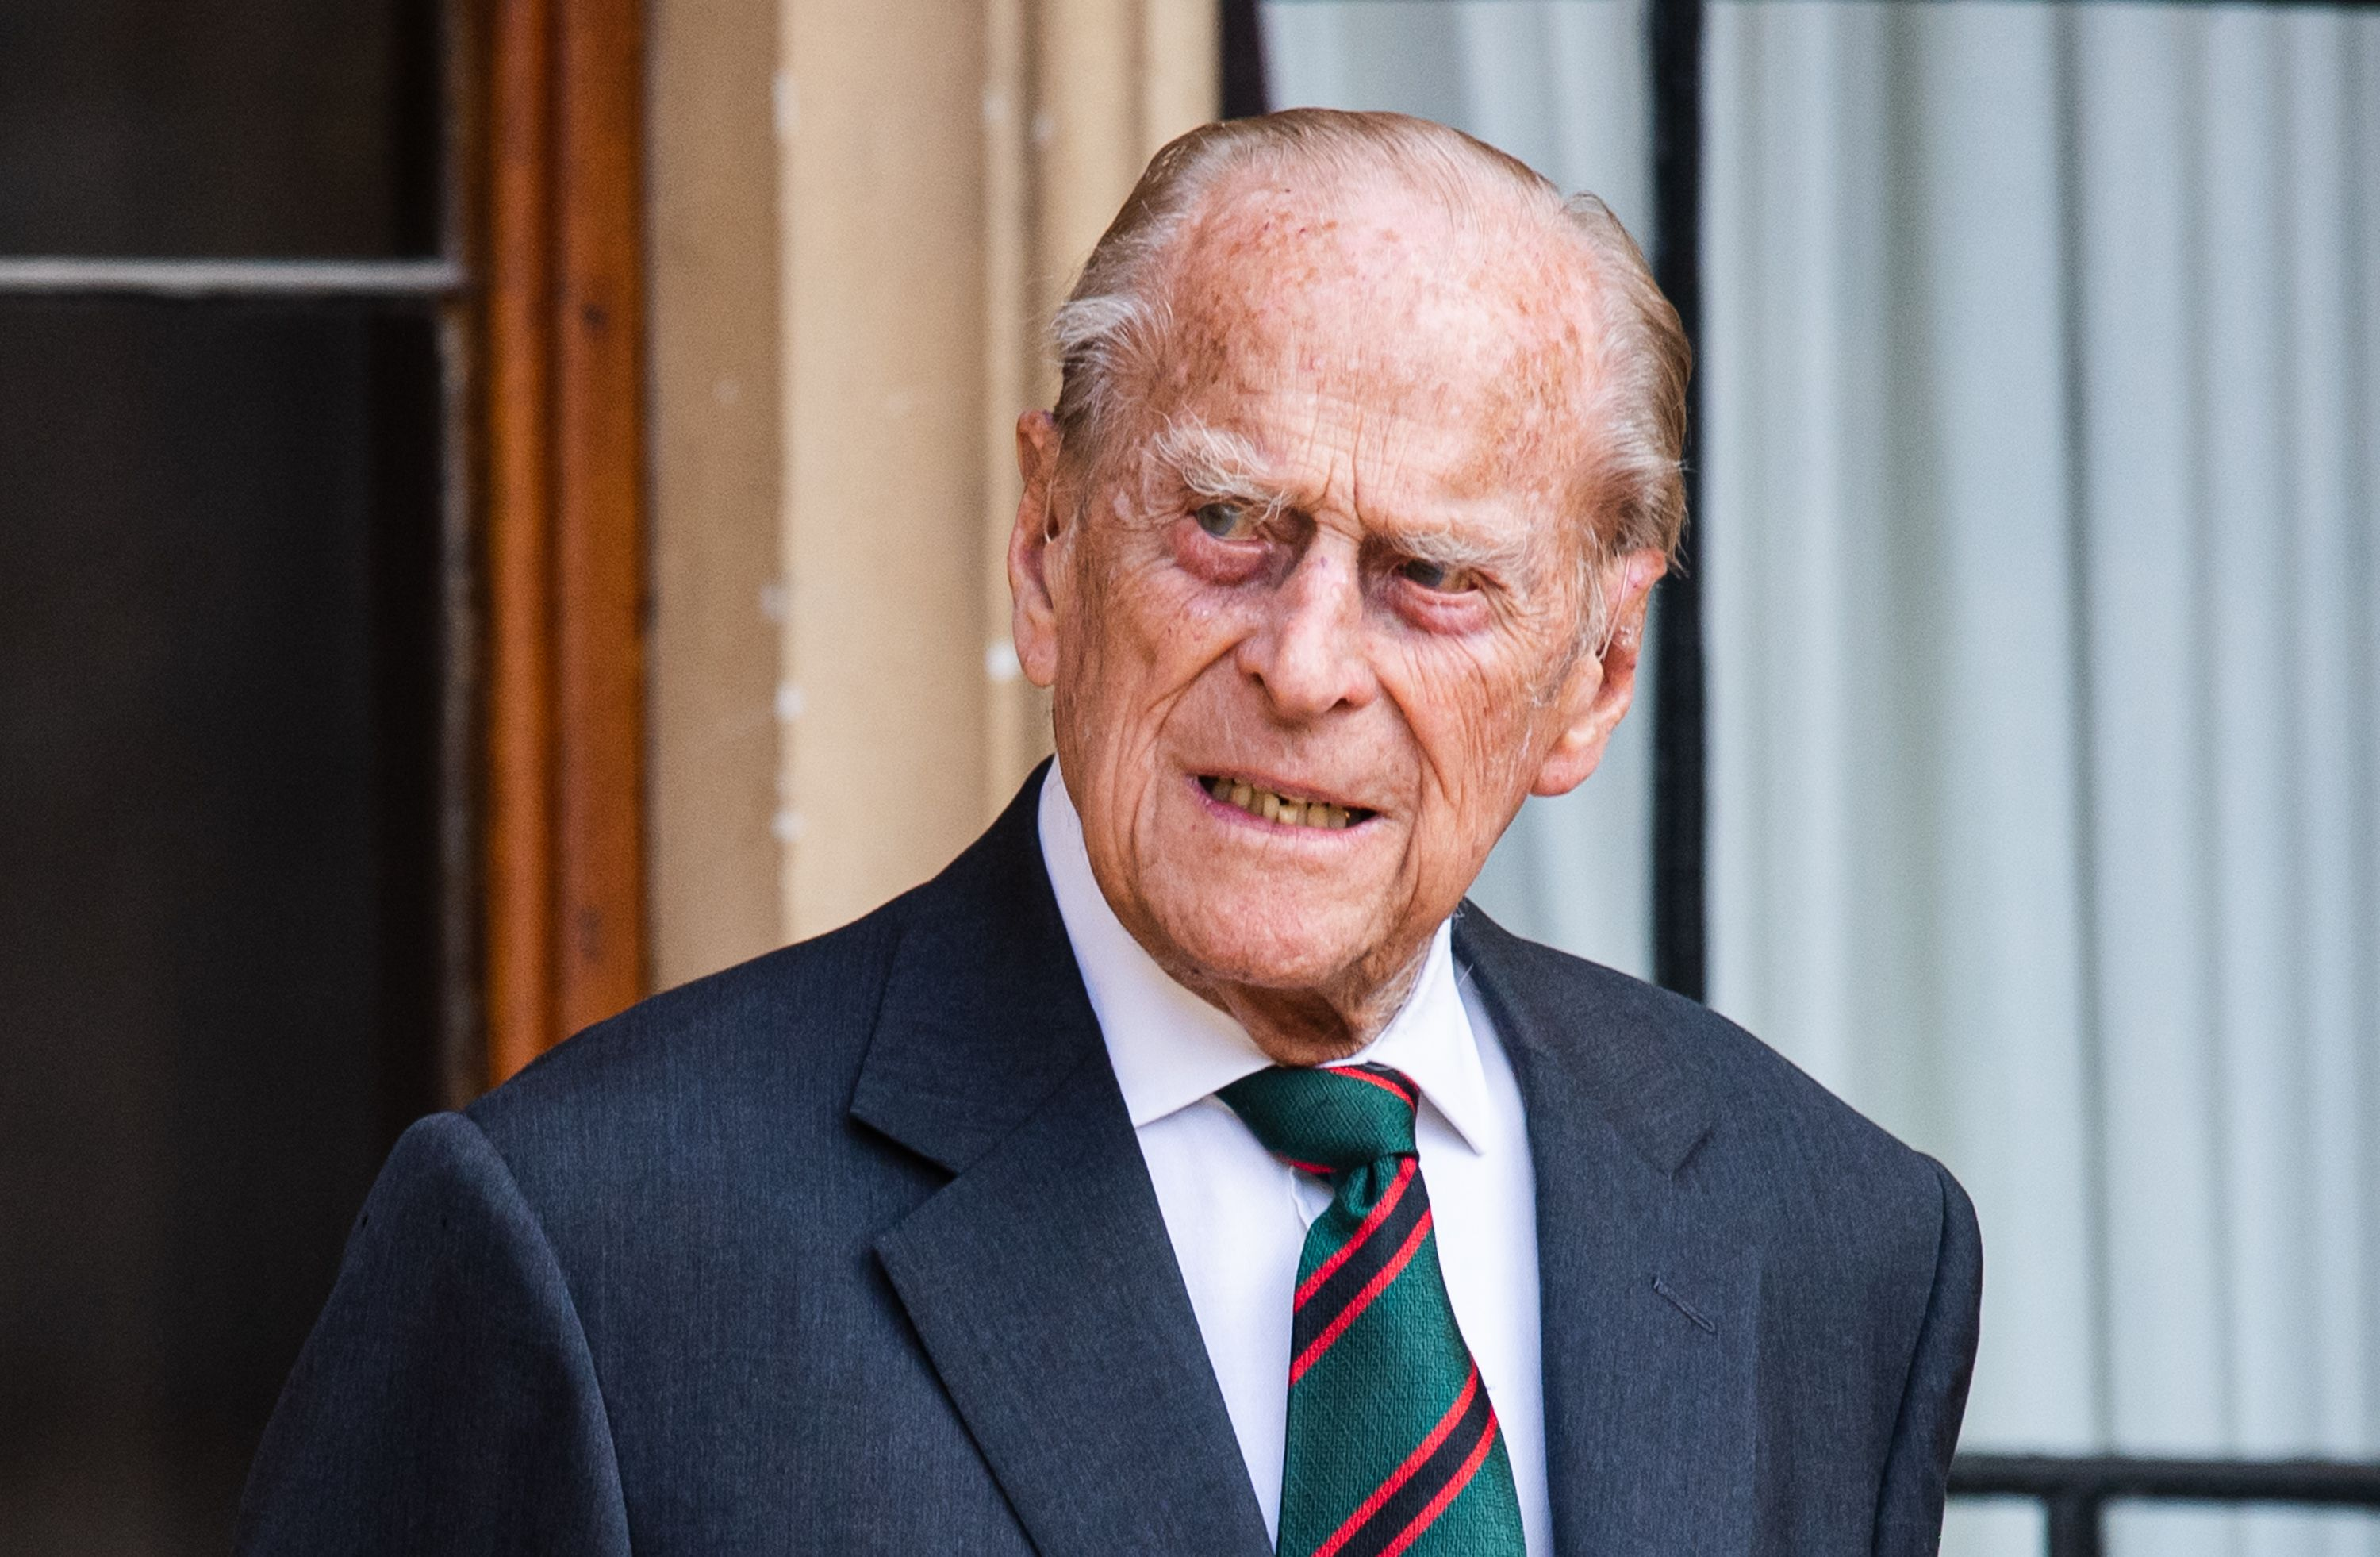 Prince Philip at the transfer of the Colonel-in-Chief of The Rifles at Windsor Castle on July 22, 2020 | Photo: Getty Images